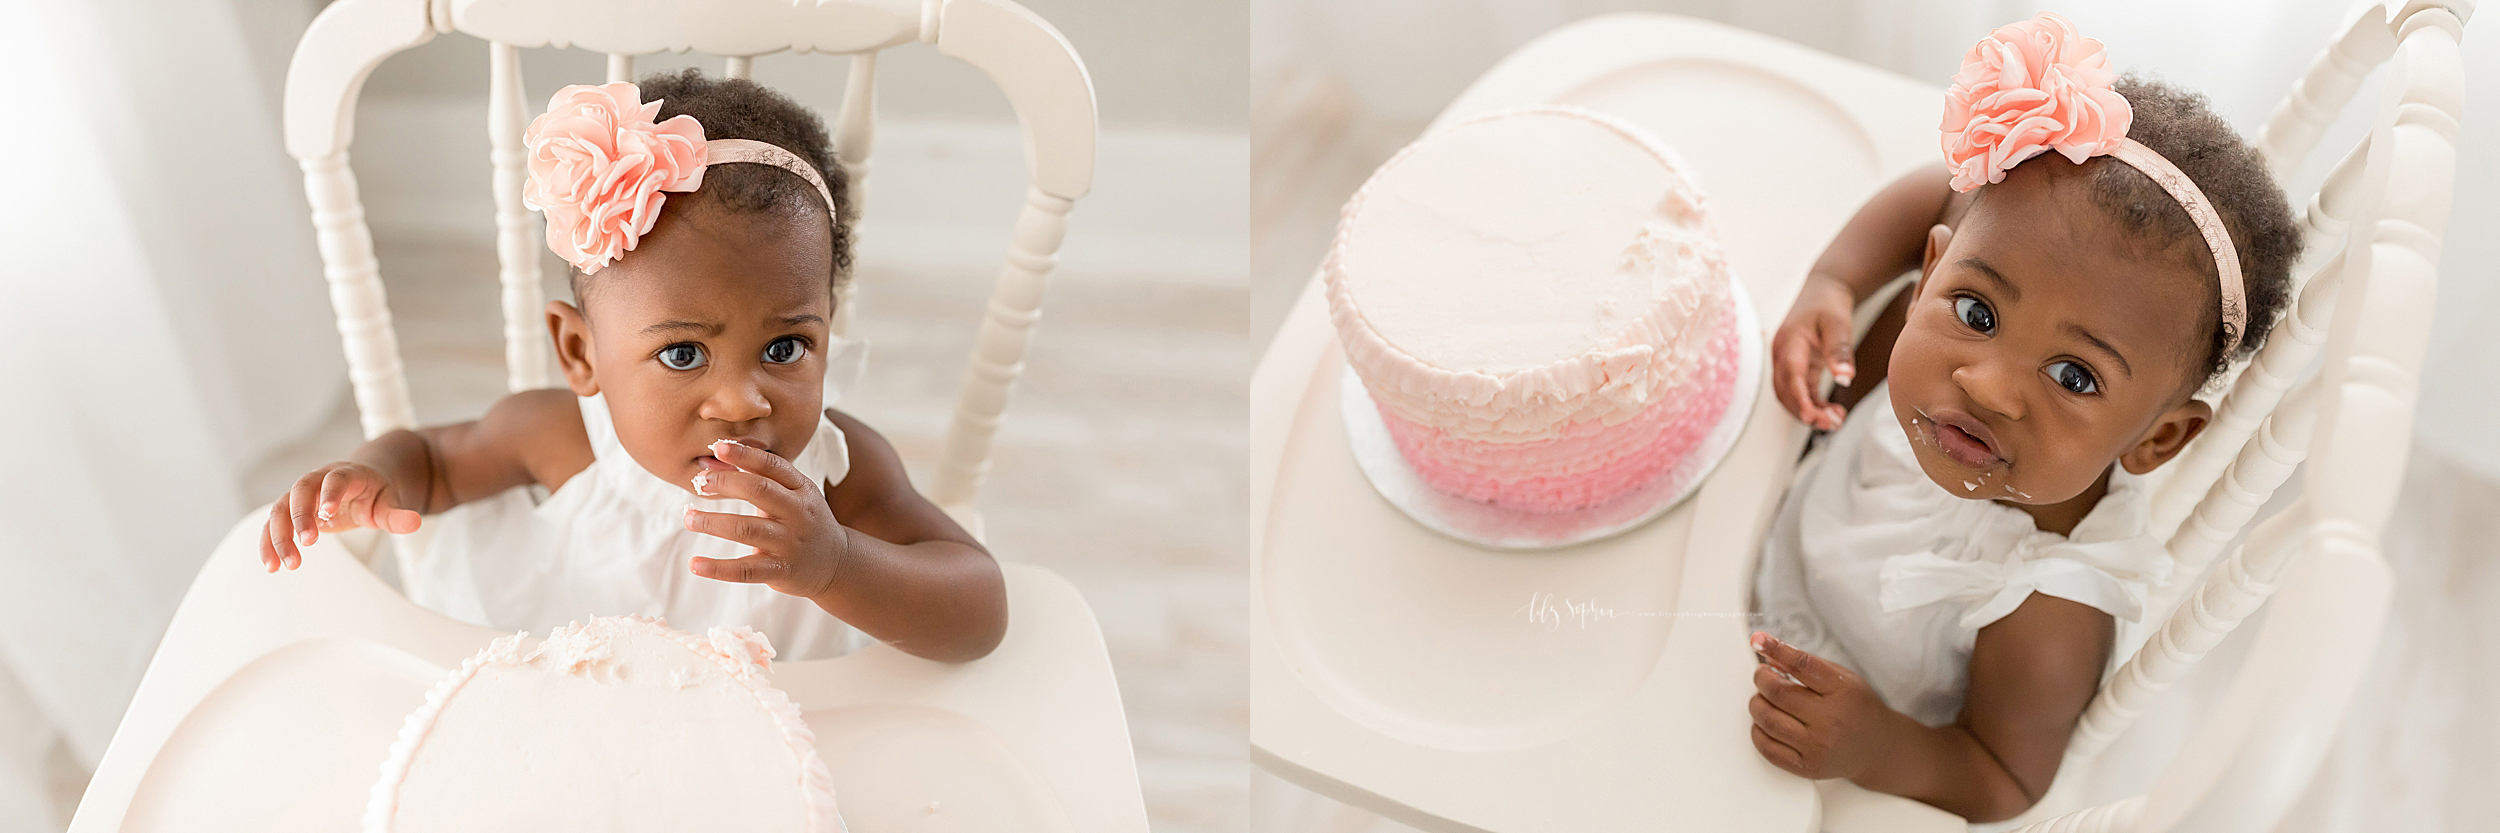 atlanta-smyrna-brookhaven-decatur-lily-sophia-photography-photographer-portraits-grant-park-intown-first-birthday-cake-smash-one-year-old-toddler-baby-girl_0019.jpg